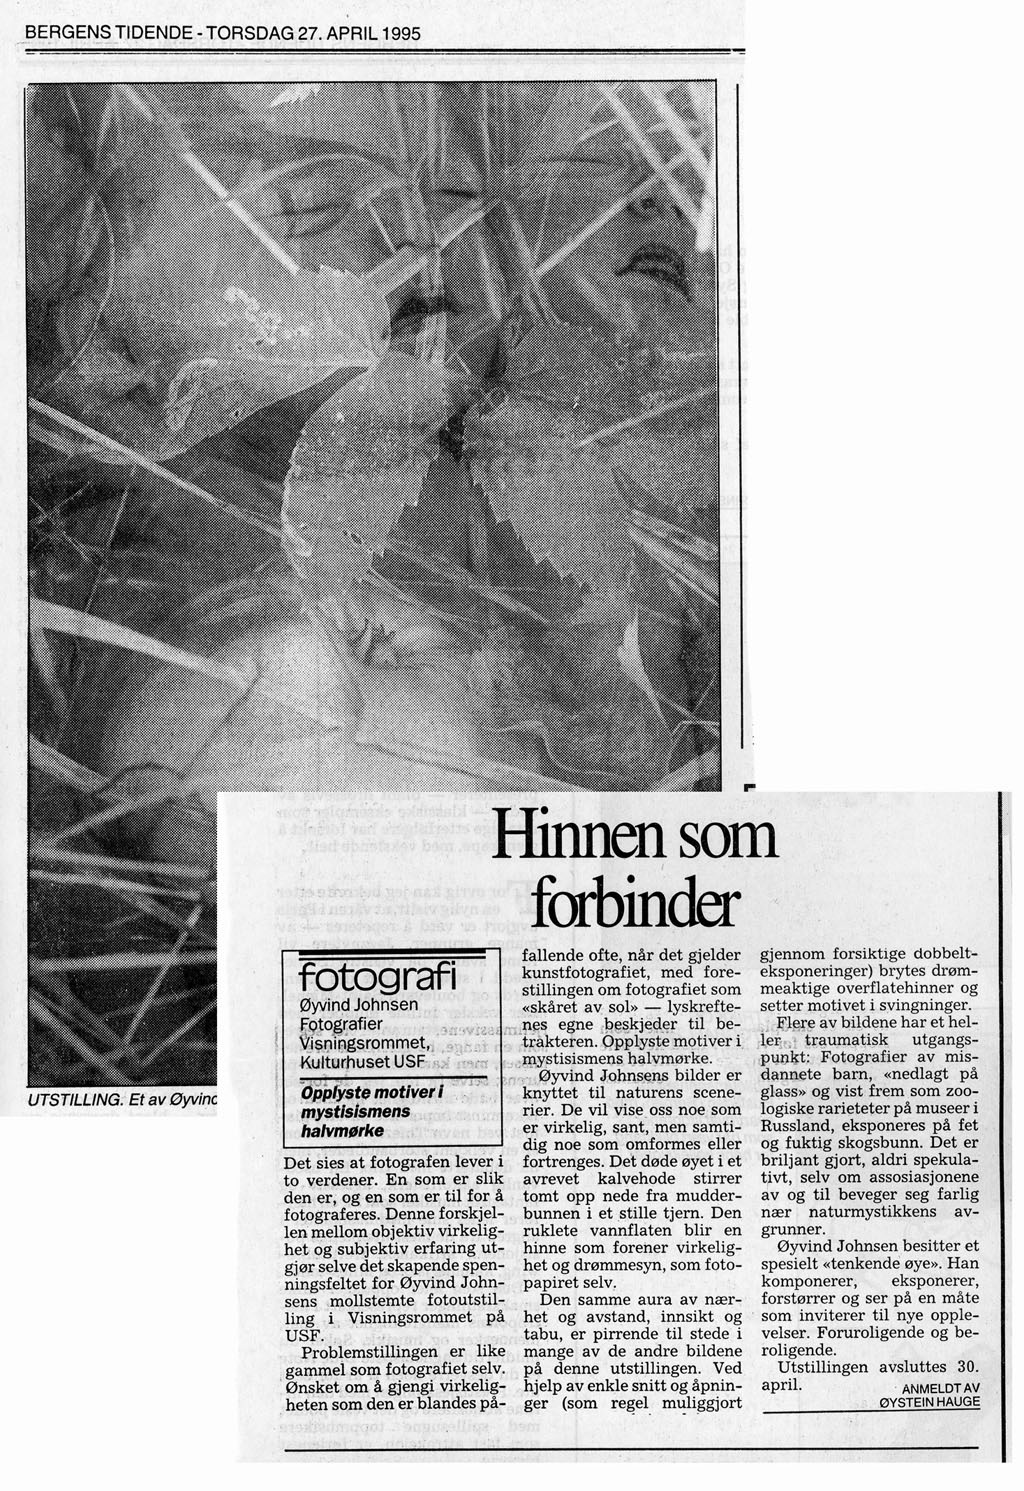 000ny 1995-exhibition-criticism-BT-1